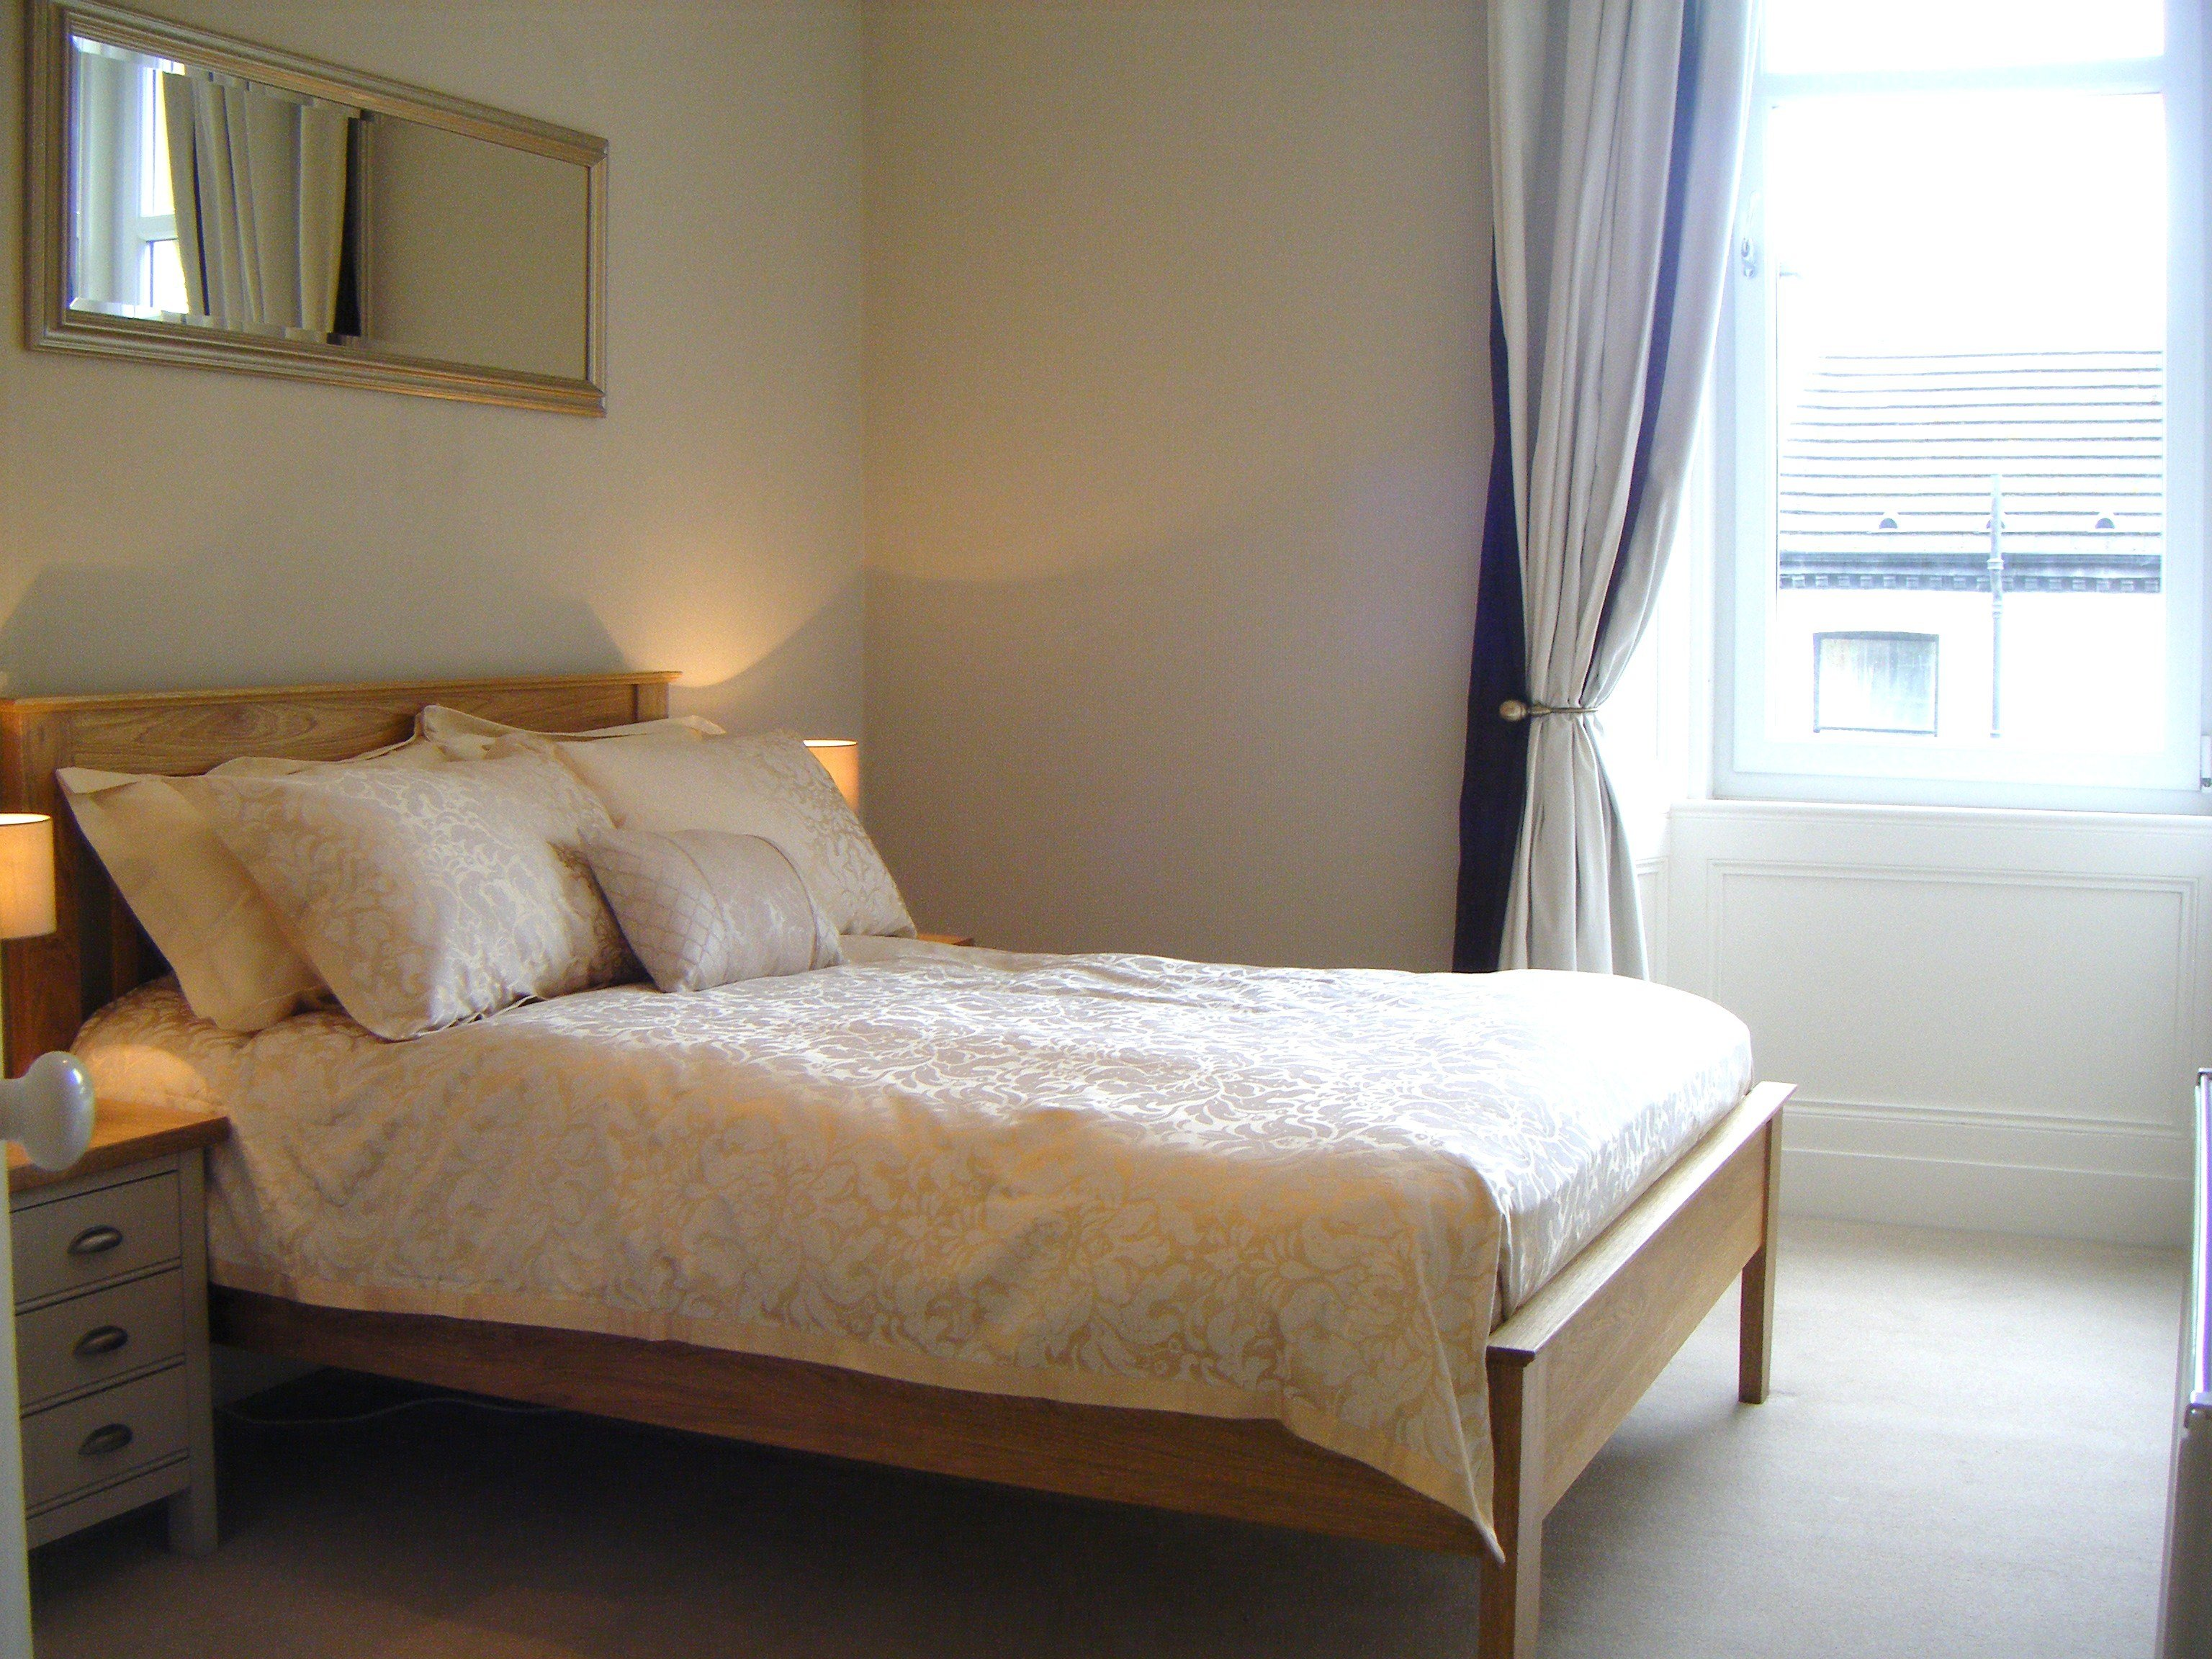 Best 1 Bed Flat To Rent West End Park Street Glasgow G3 6Lq With Pictures